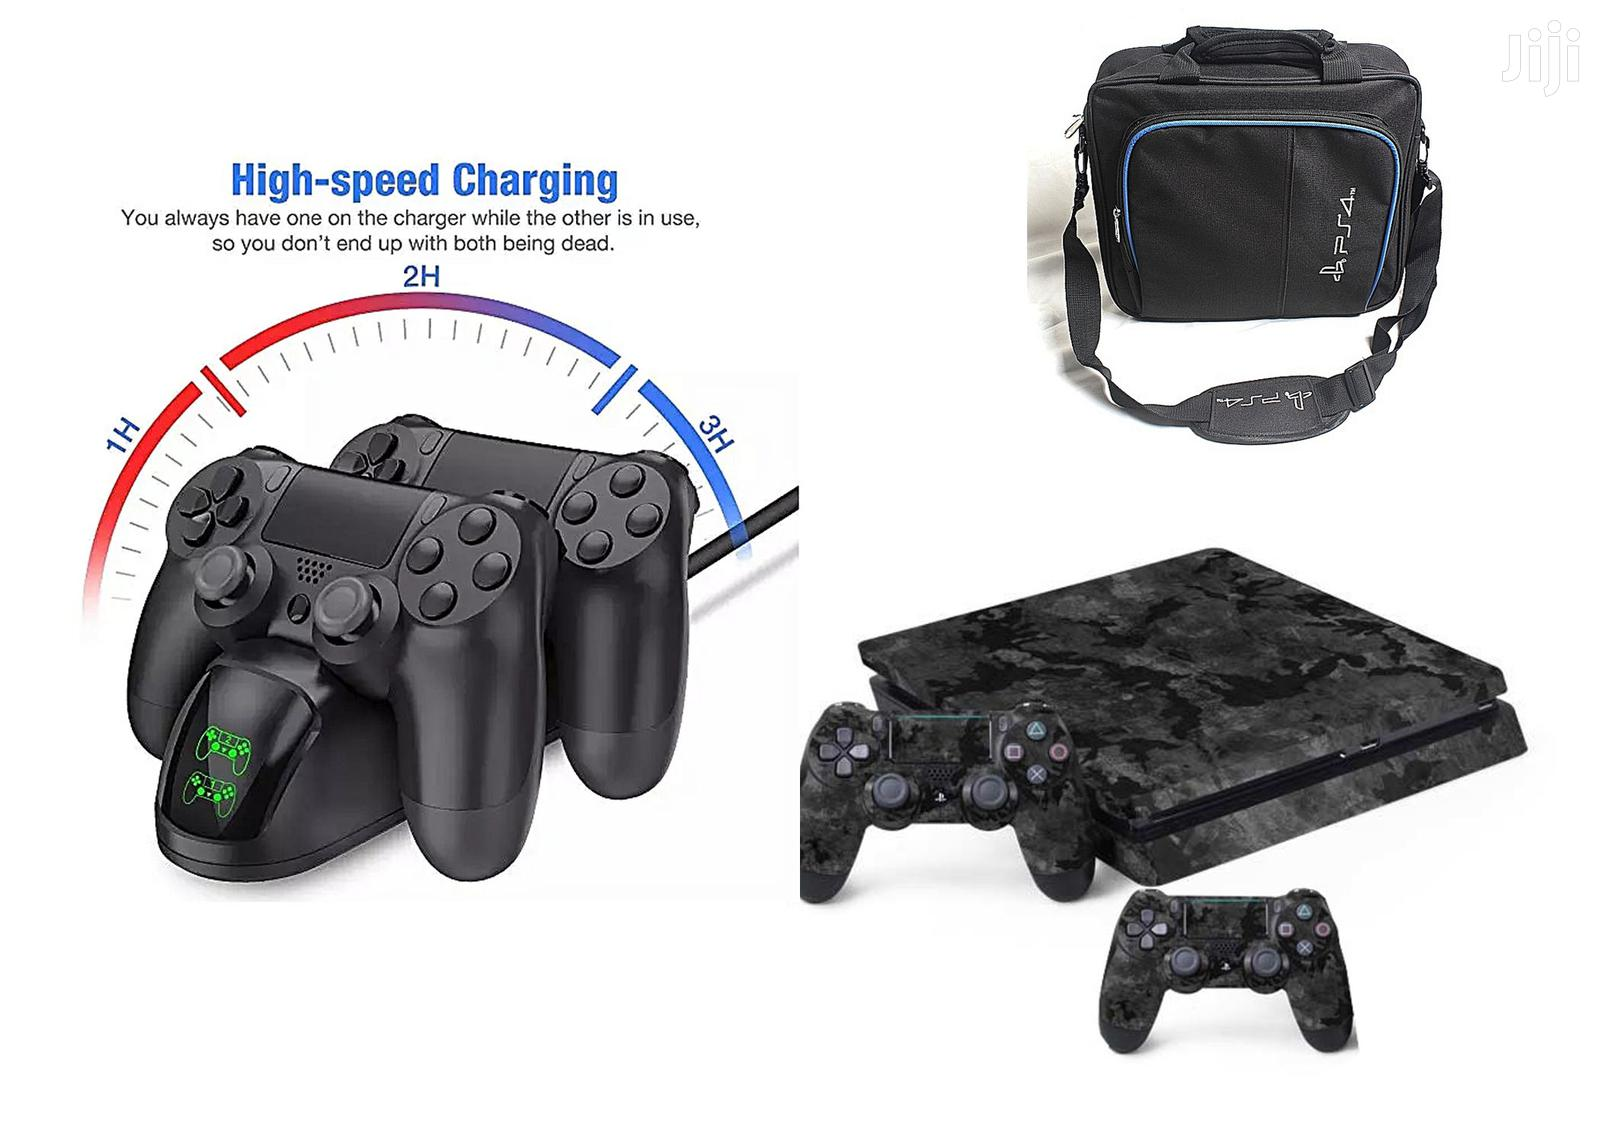 Ps4 Charging Station Stand Camo Ps4 Slim Skin Ps4 Bag In Ikeja Accessories Supplies For Electronics Chiedozie Harrison Mbah Jiji Ng For Sale In Ikeja Buy Accessories,Small Kid Room Boys Small Kids Bedroom Ideas